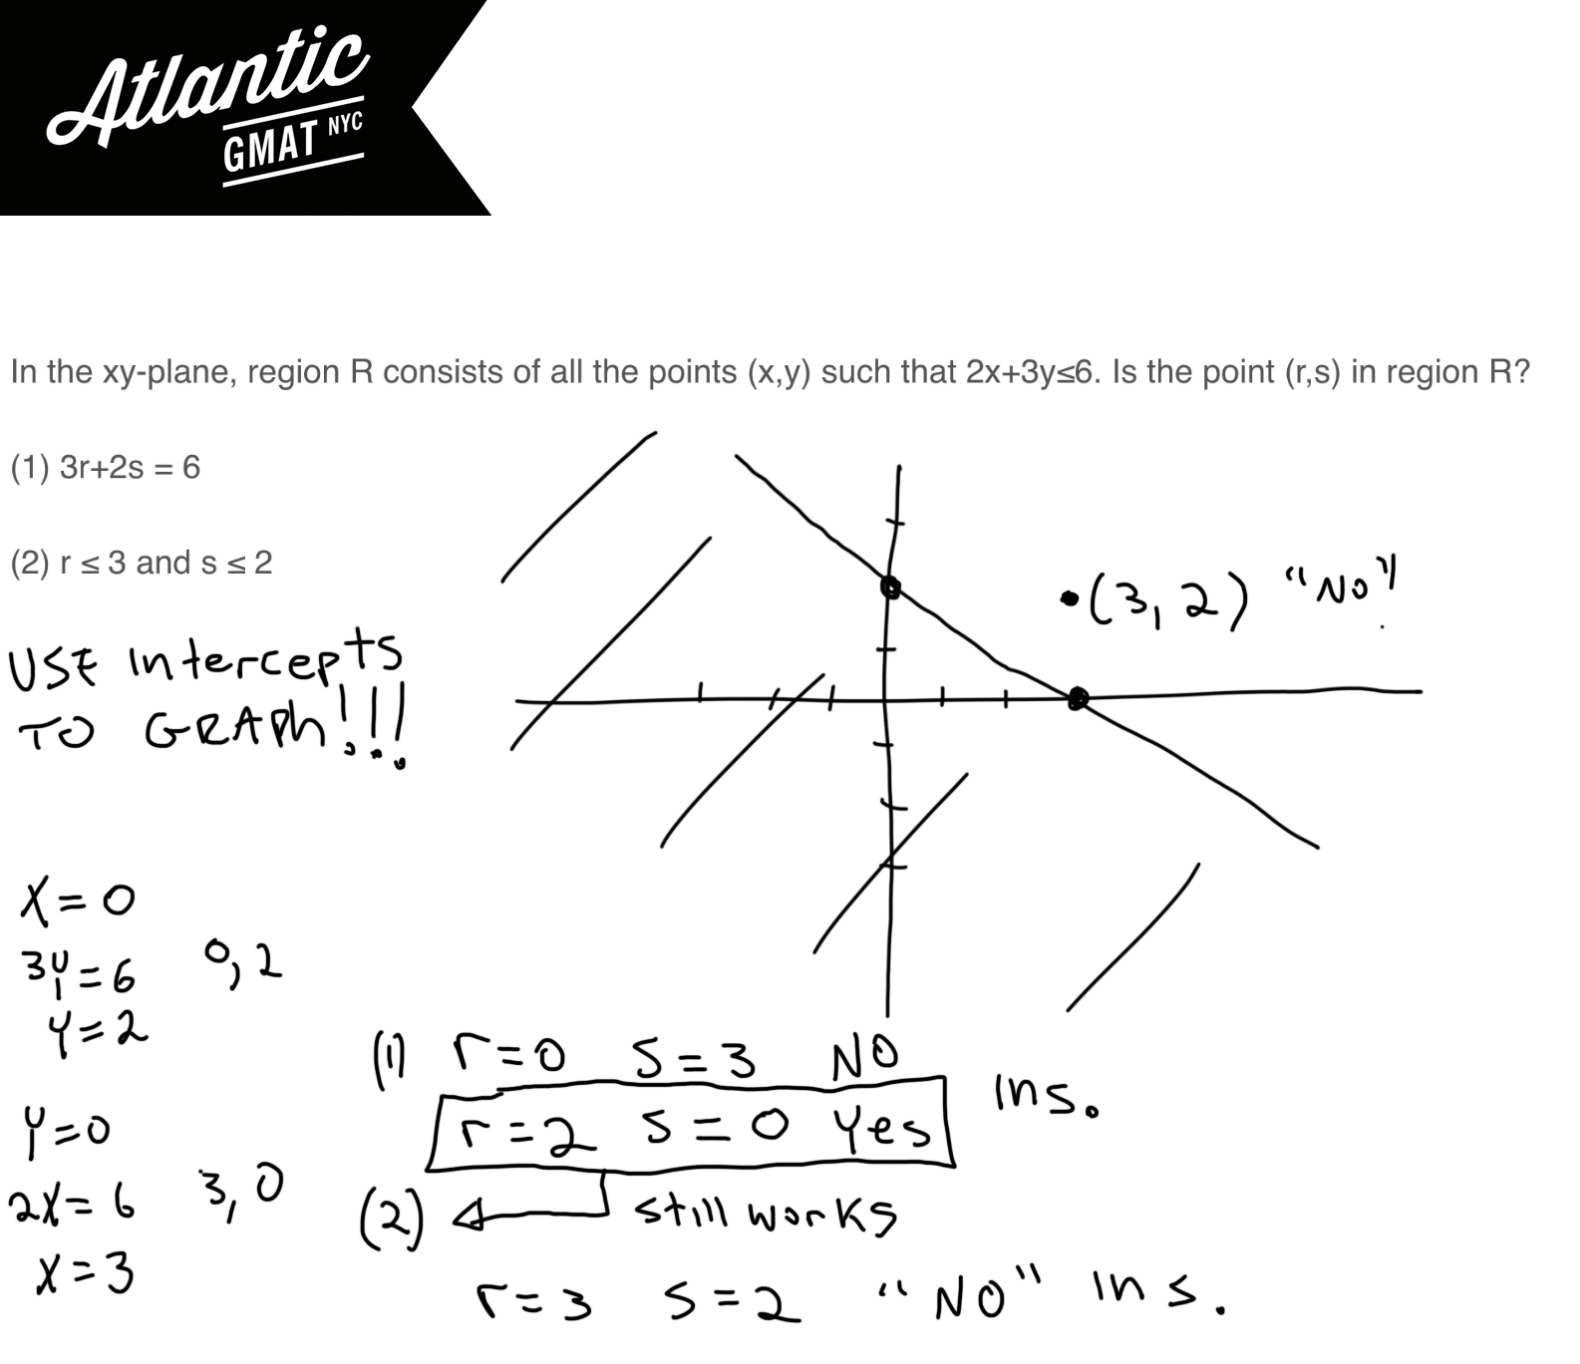 In the xy-plane, region R consists of all the points (x,y) such that 2x + 3y ≤ 6 GMAT Explanation 3